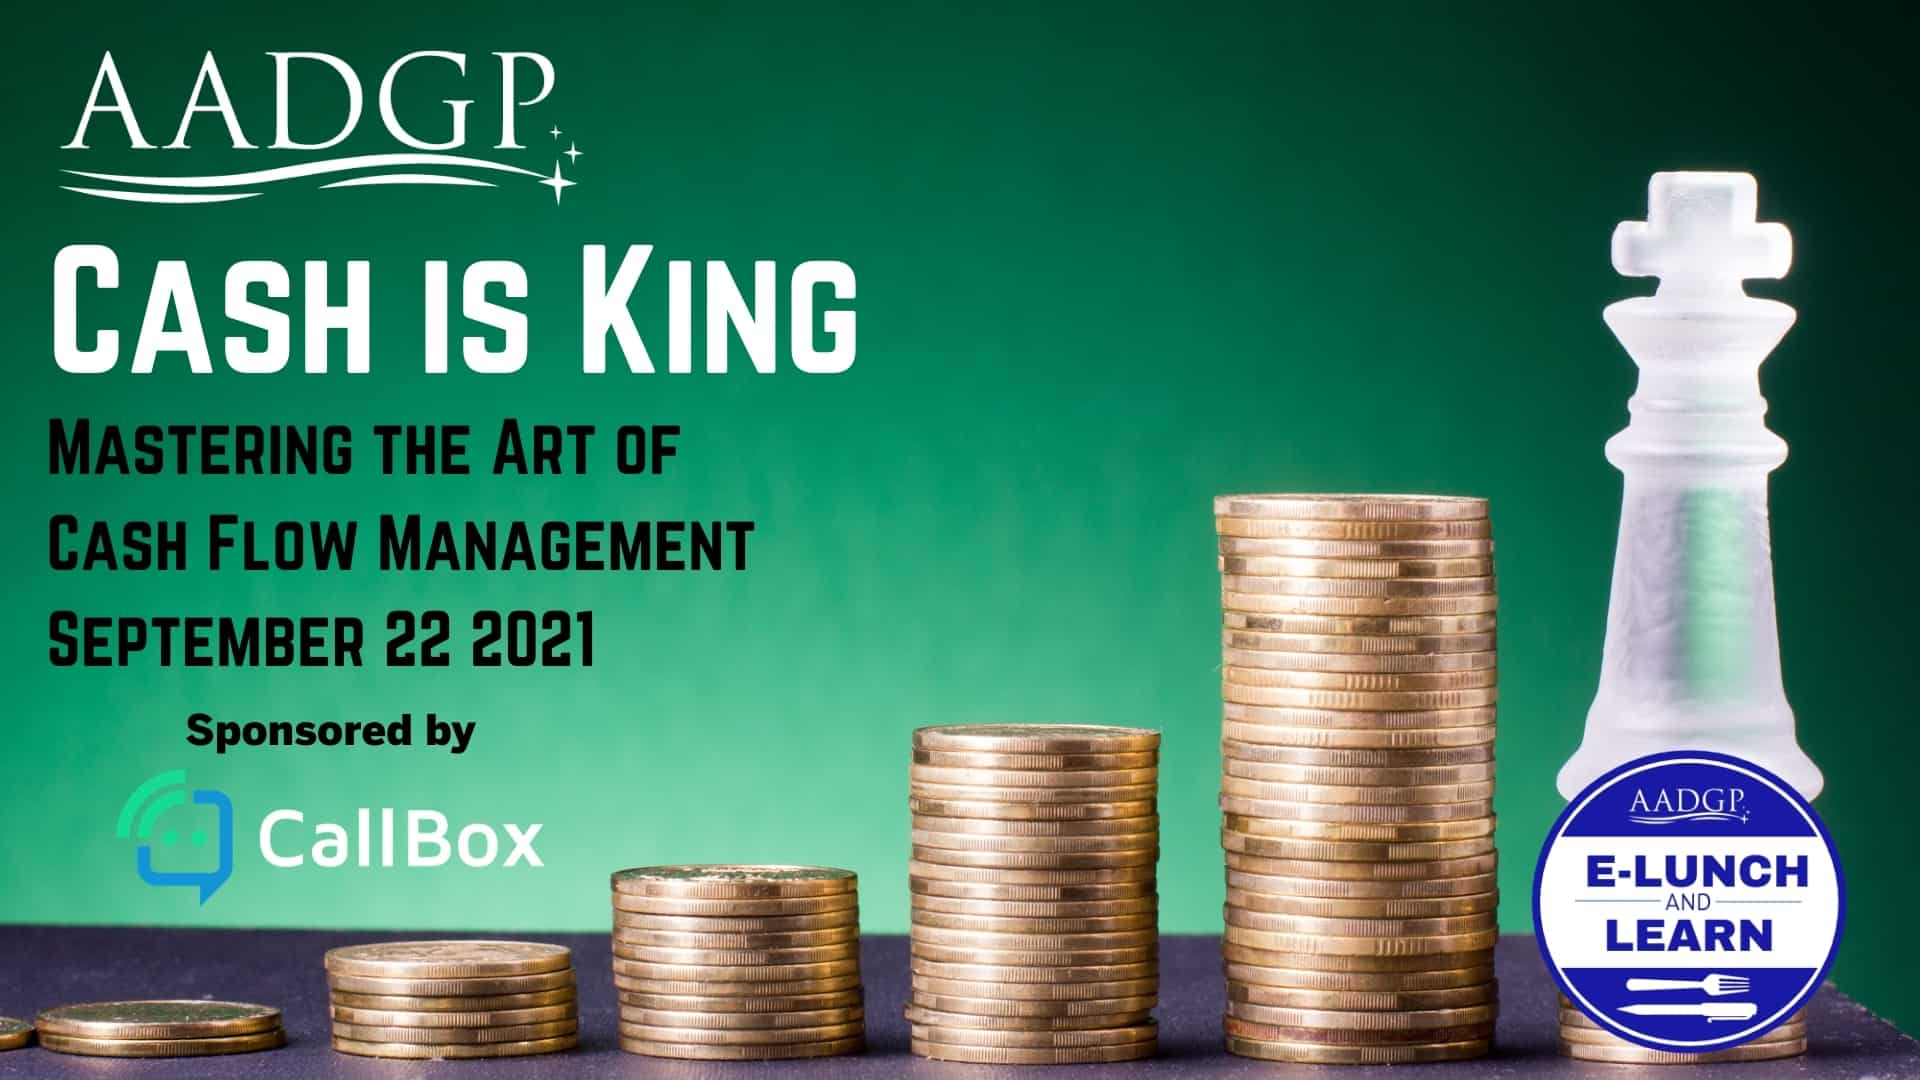 Cash is King AADGP Webinar, September 22, 2021